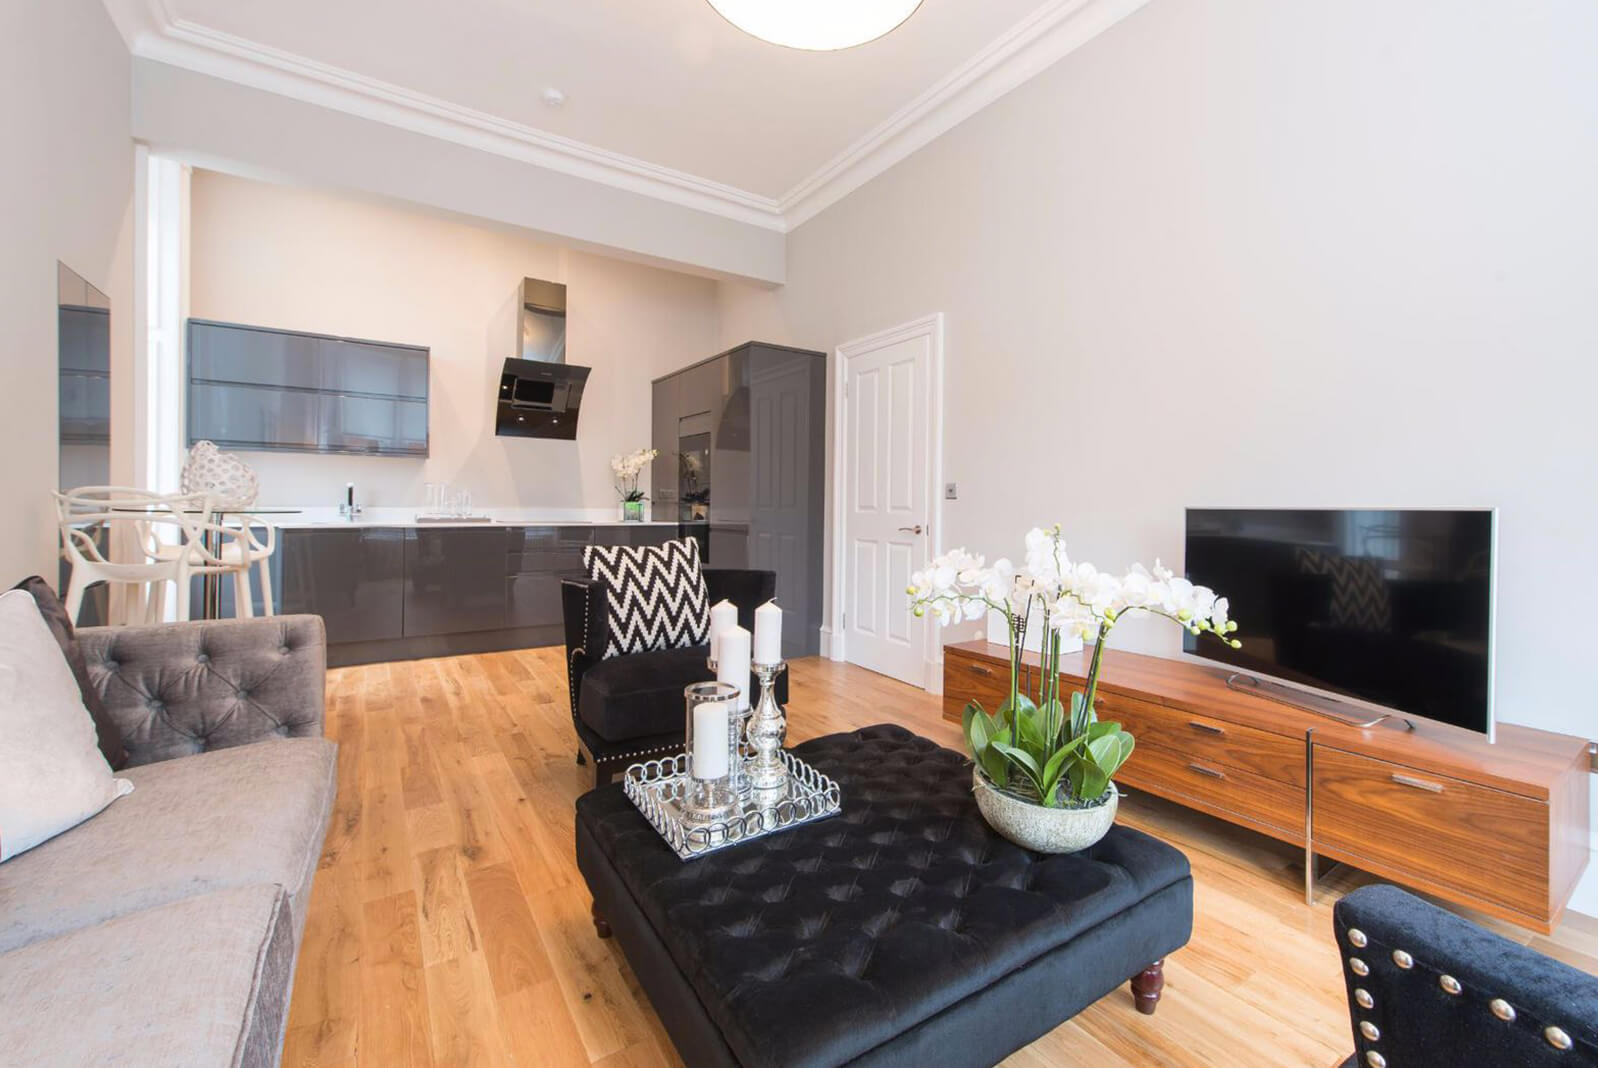 Furnished open plan lounge looking into kitchen area. Wooden flooring and cornicing on ceiling.